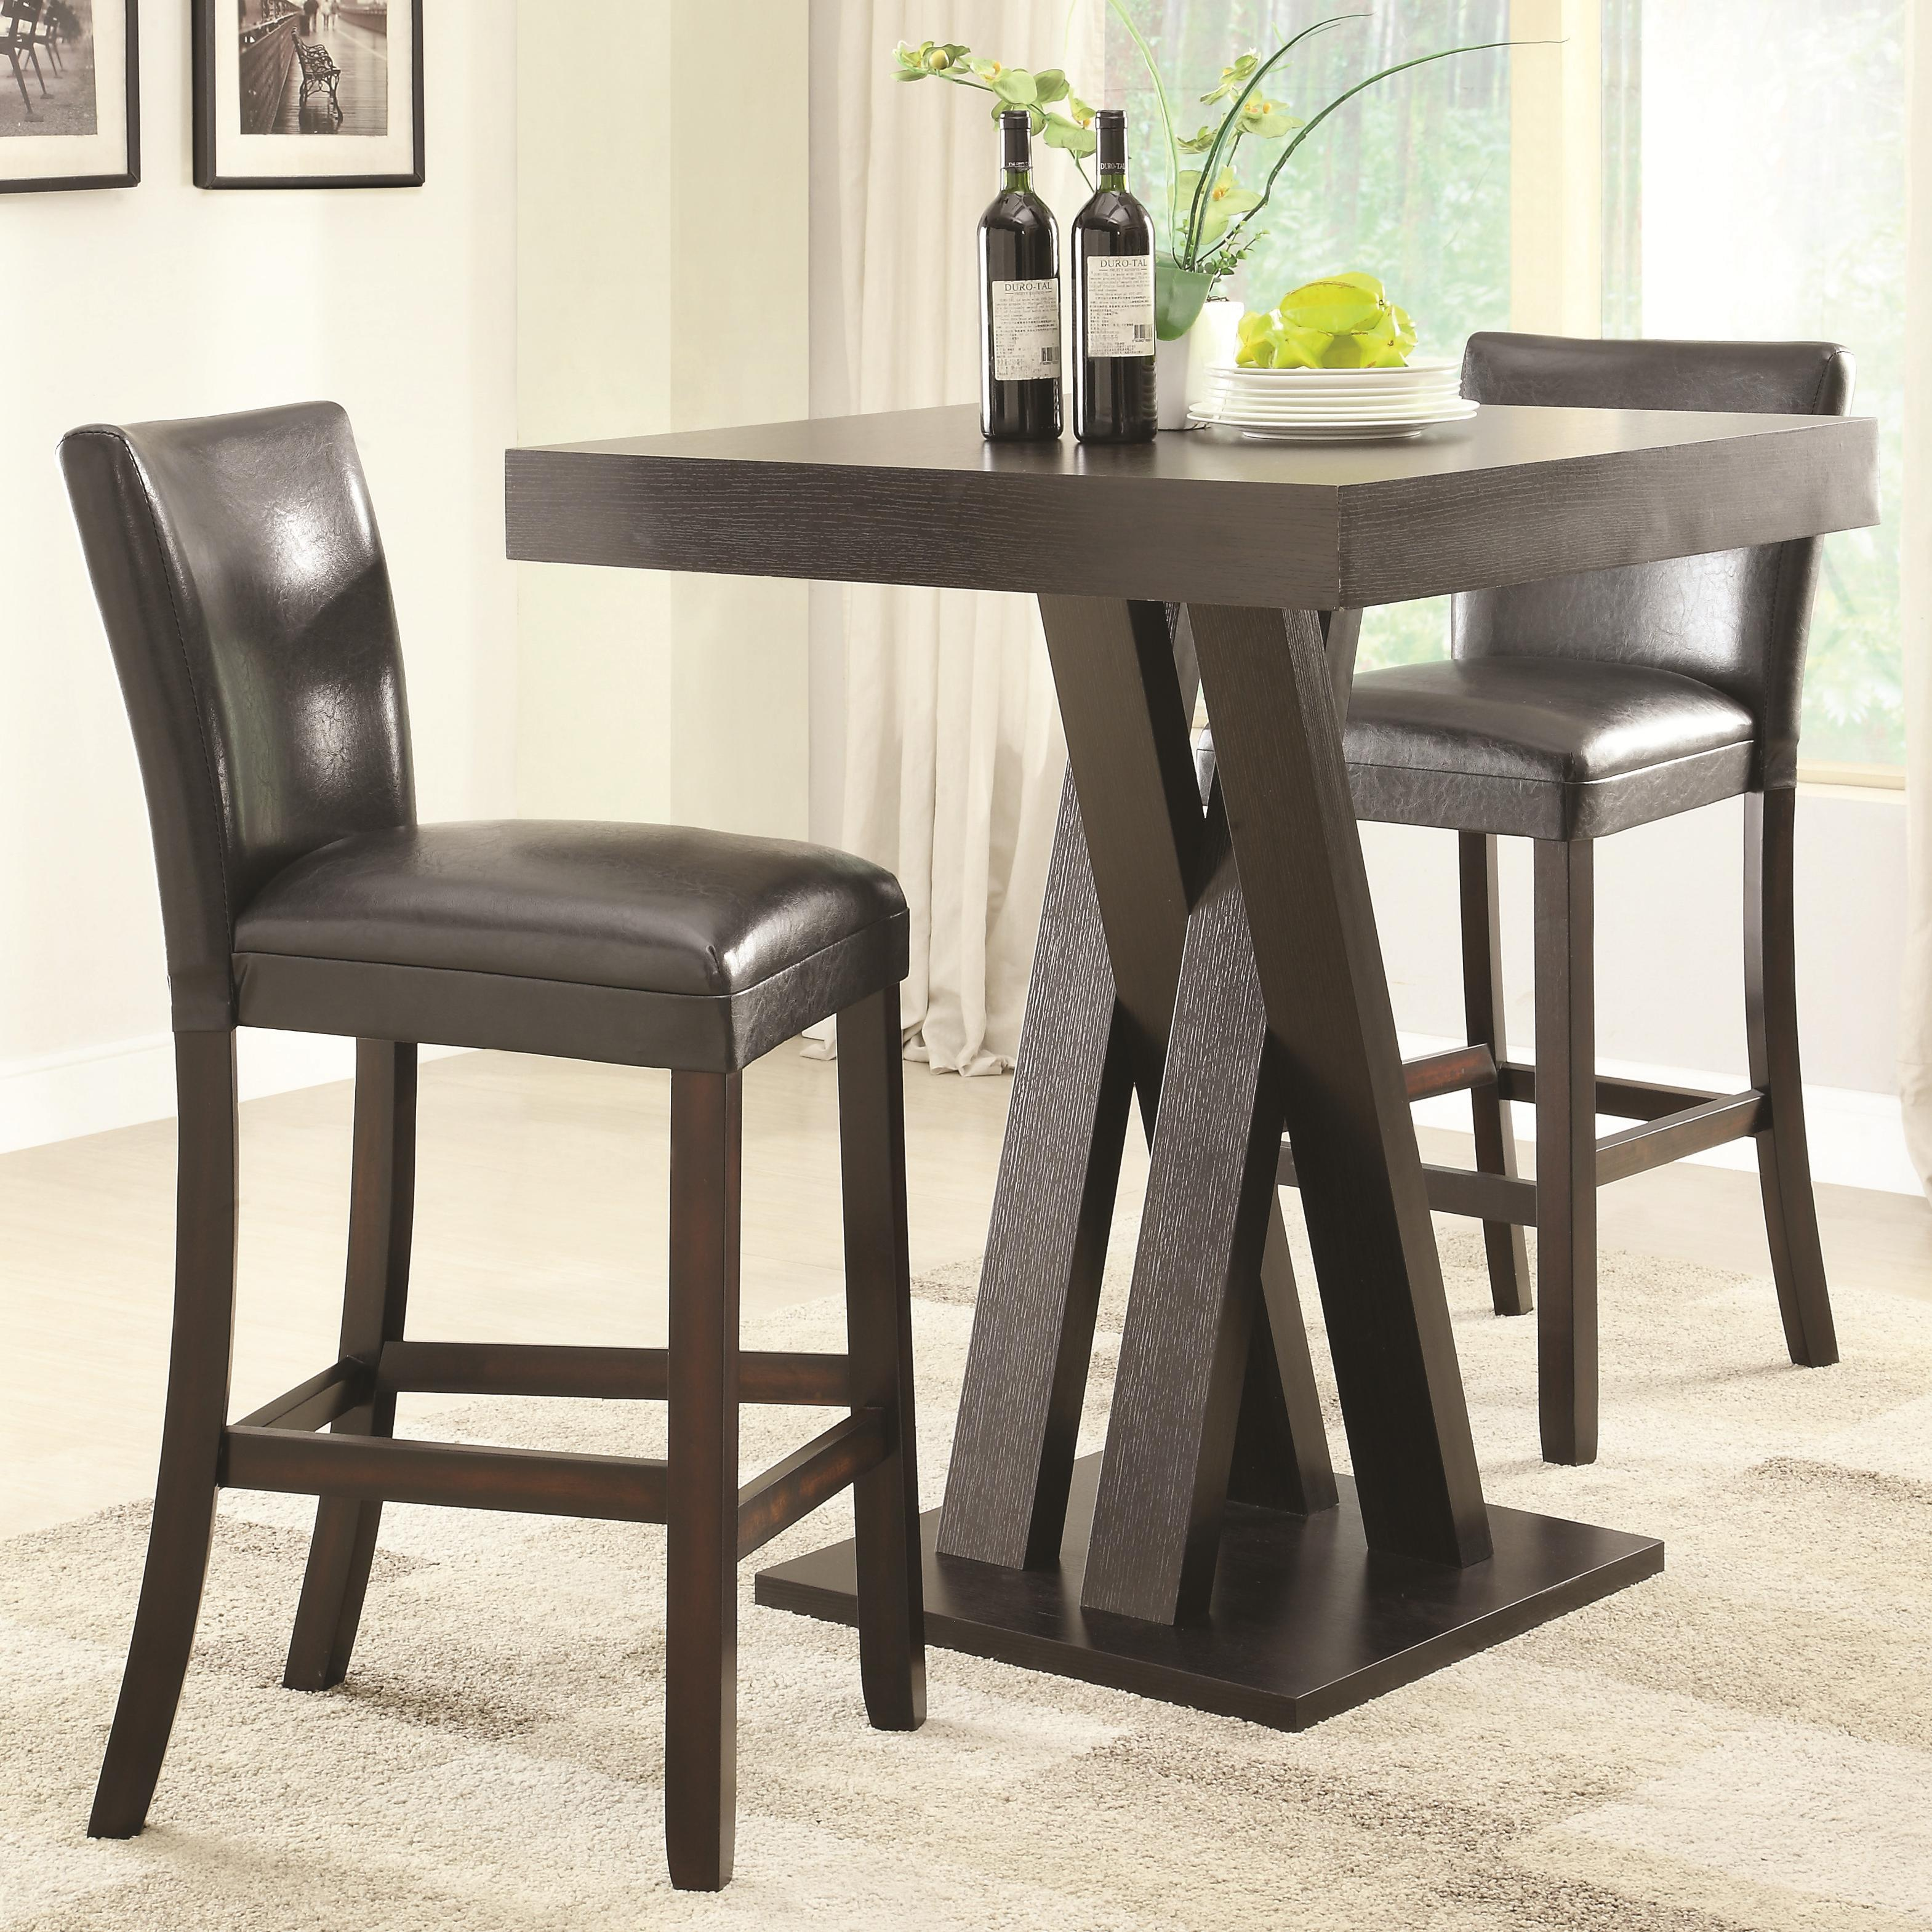 Dining Room Furniture Dallas Tx: Coaster Selva 3pc Cappuccino Counter Height Dining Room